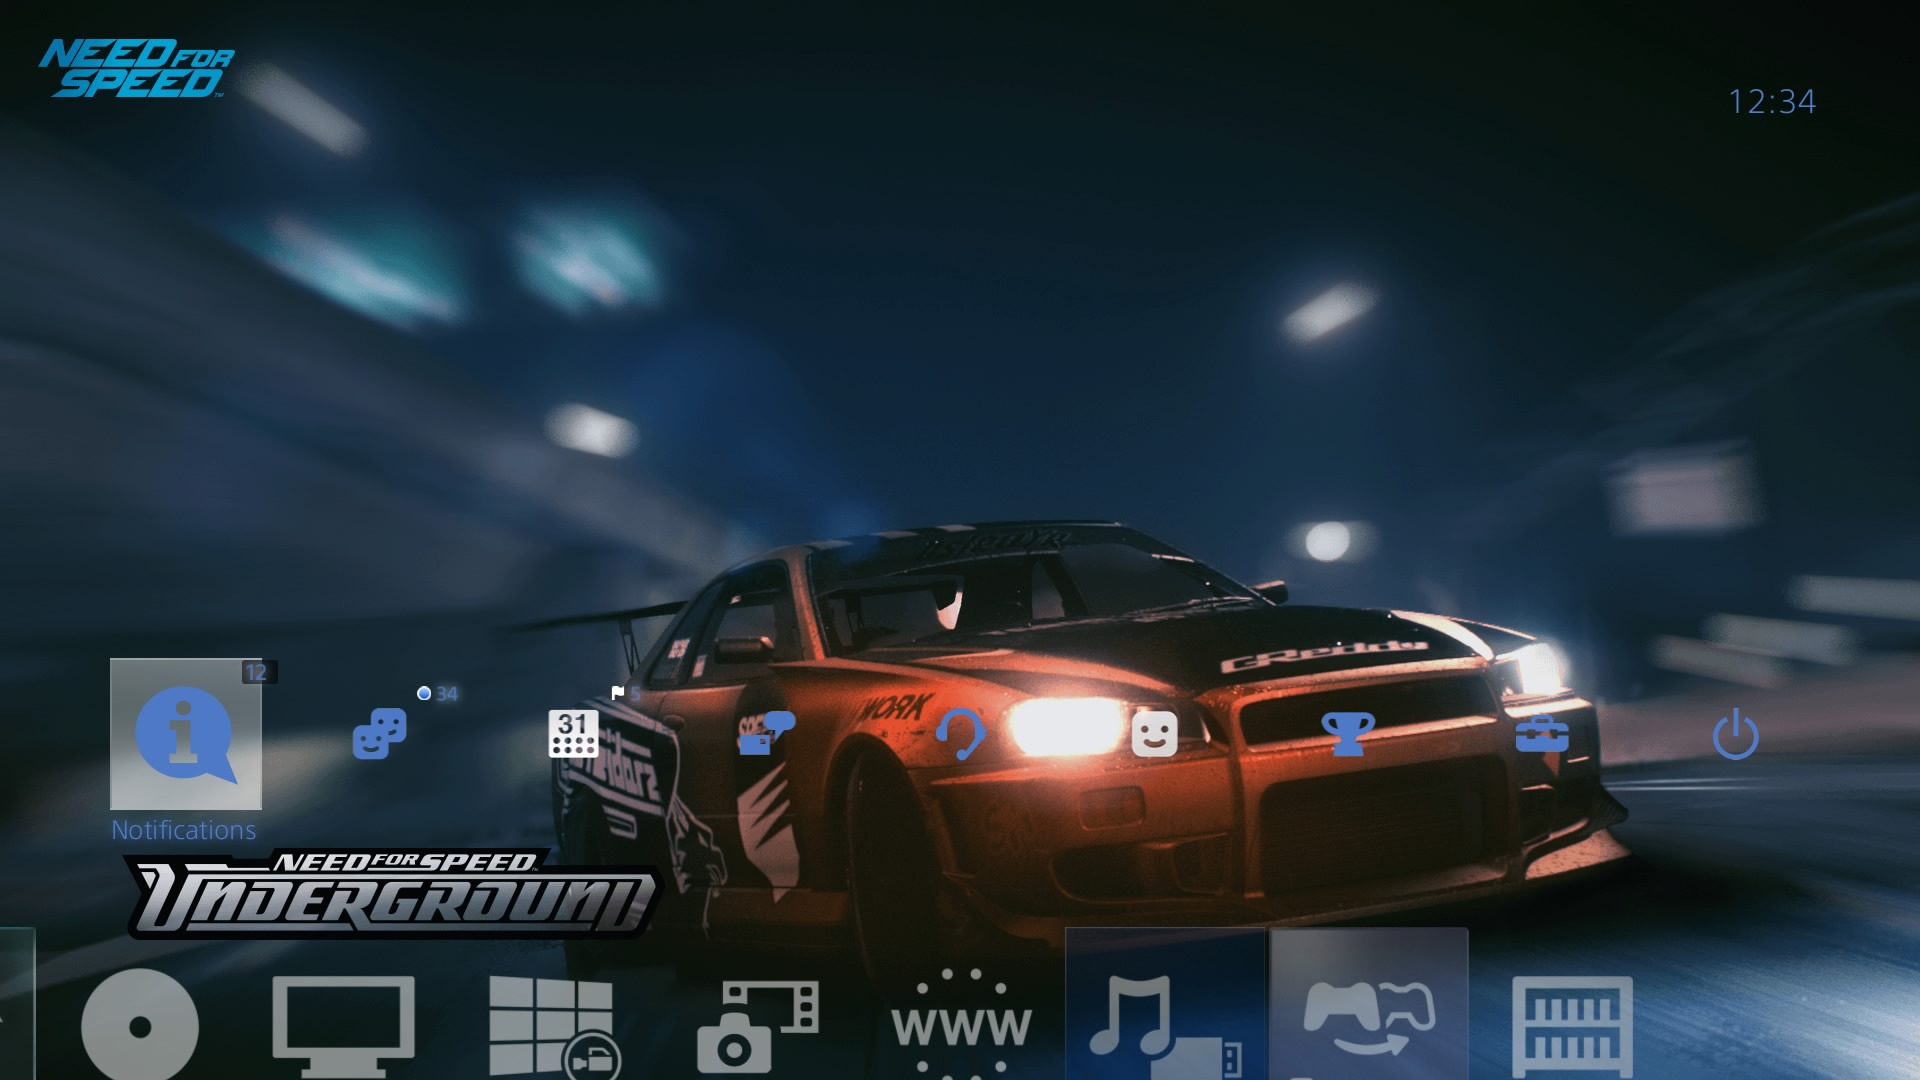 need for speed underground legends theme on ps4 official playstation store us. Black Bedroom Furniture Sets. Home Design Ideas